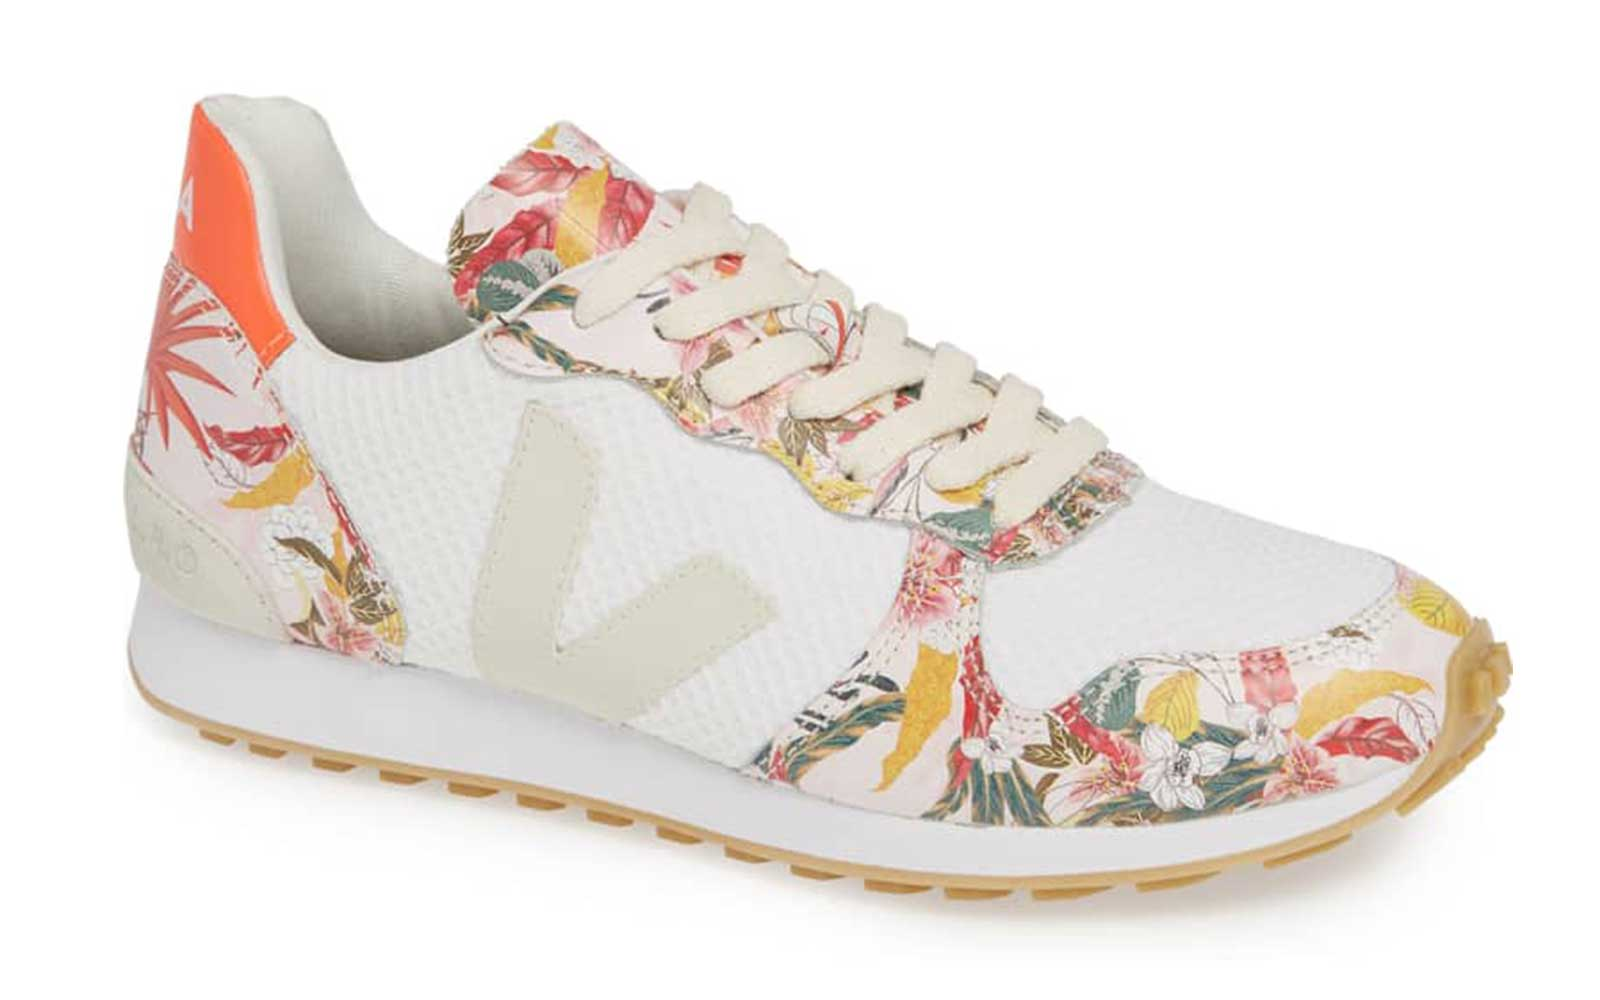 Veja Holiday sneakers